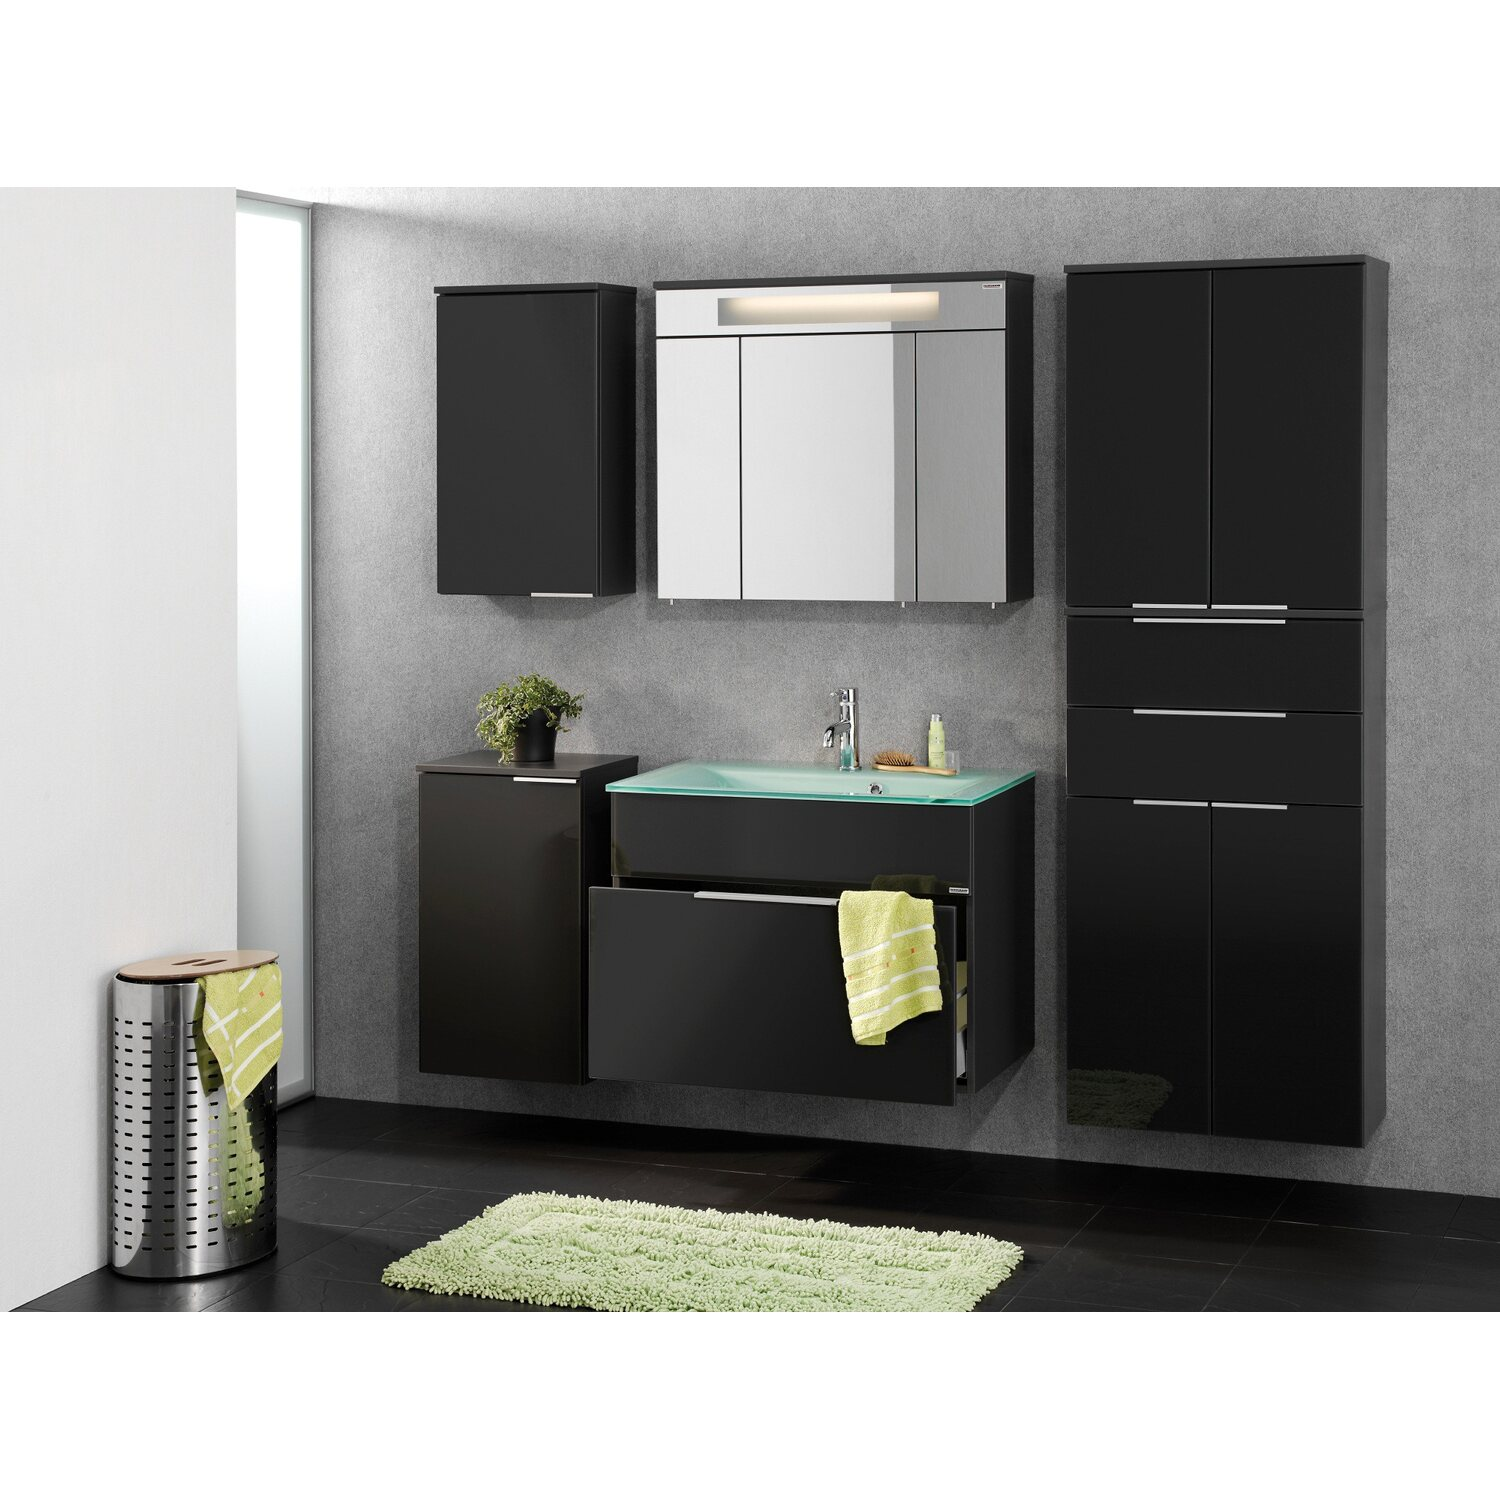 fackelmann hochschrank kara anthrazit kaufen bei obi. Black Bedroom Furniture Sets. Home Design Ideas